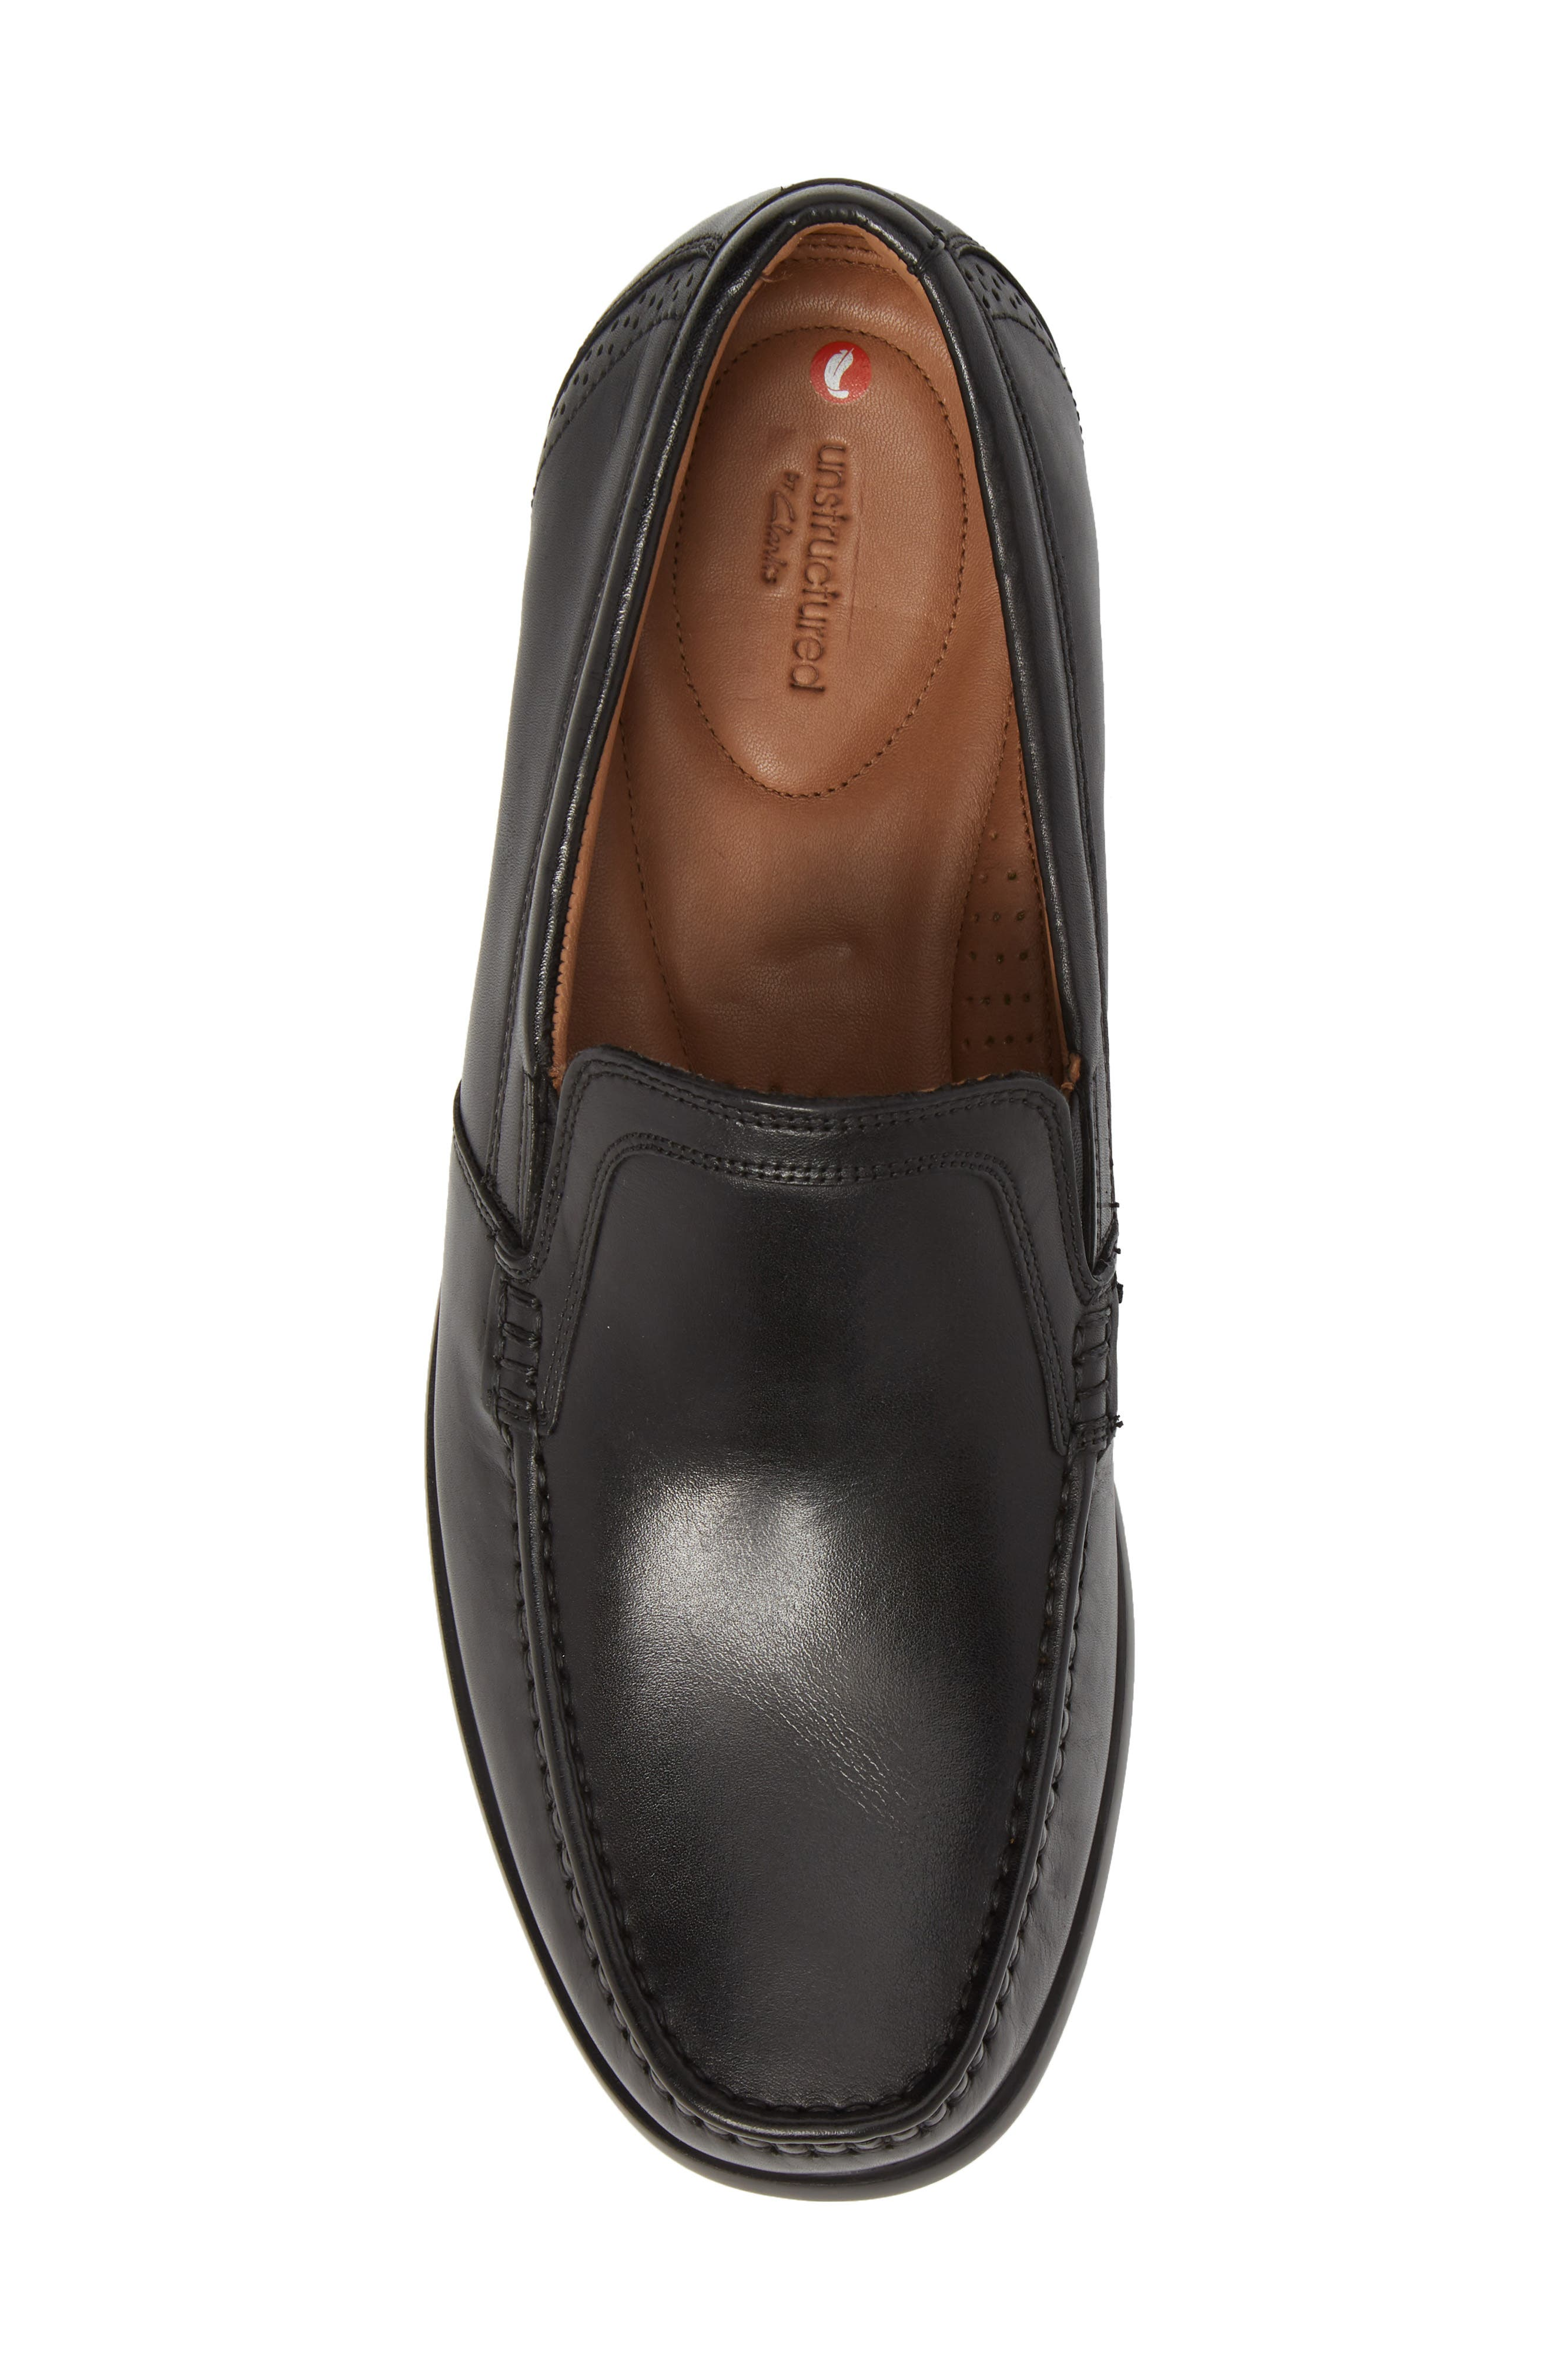 Clarks<sup>®</sup> Ungala Free Venetian Loafer,                             Alternate thumbnail 5, color,                             003